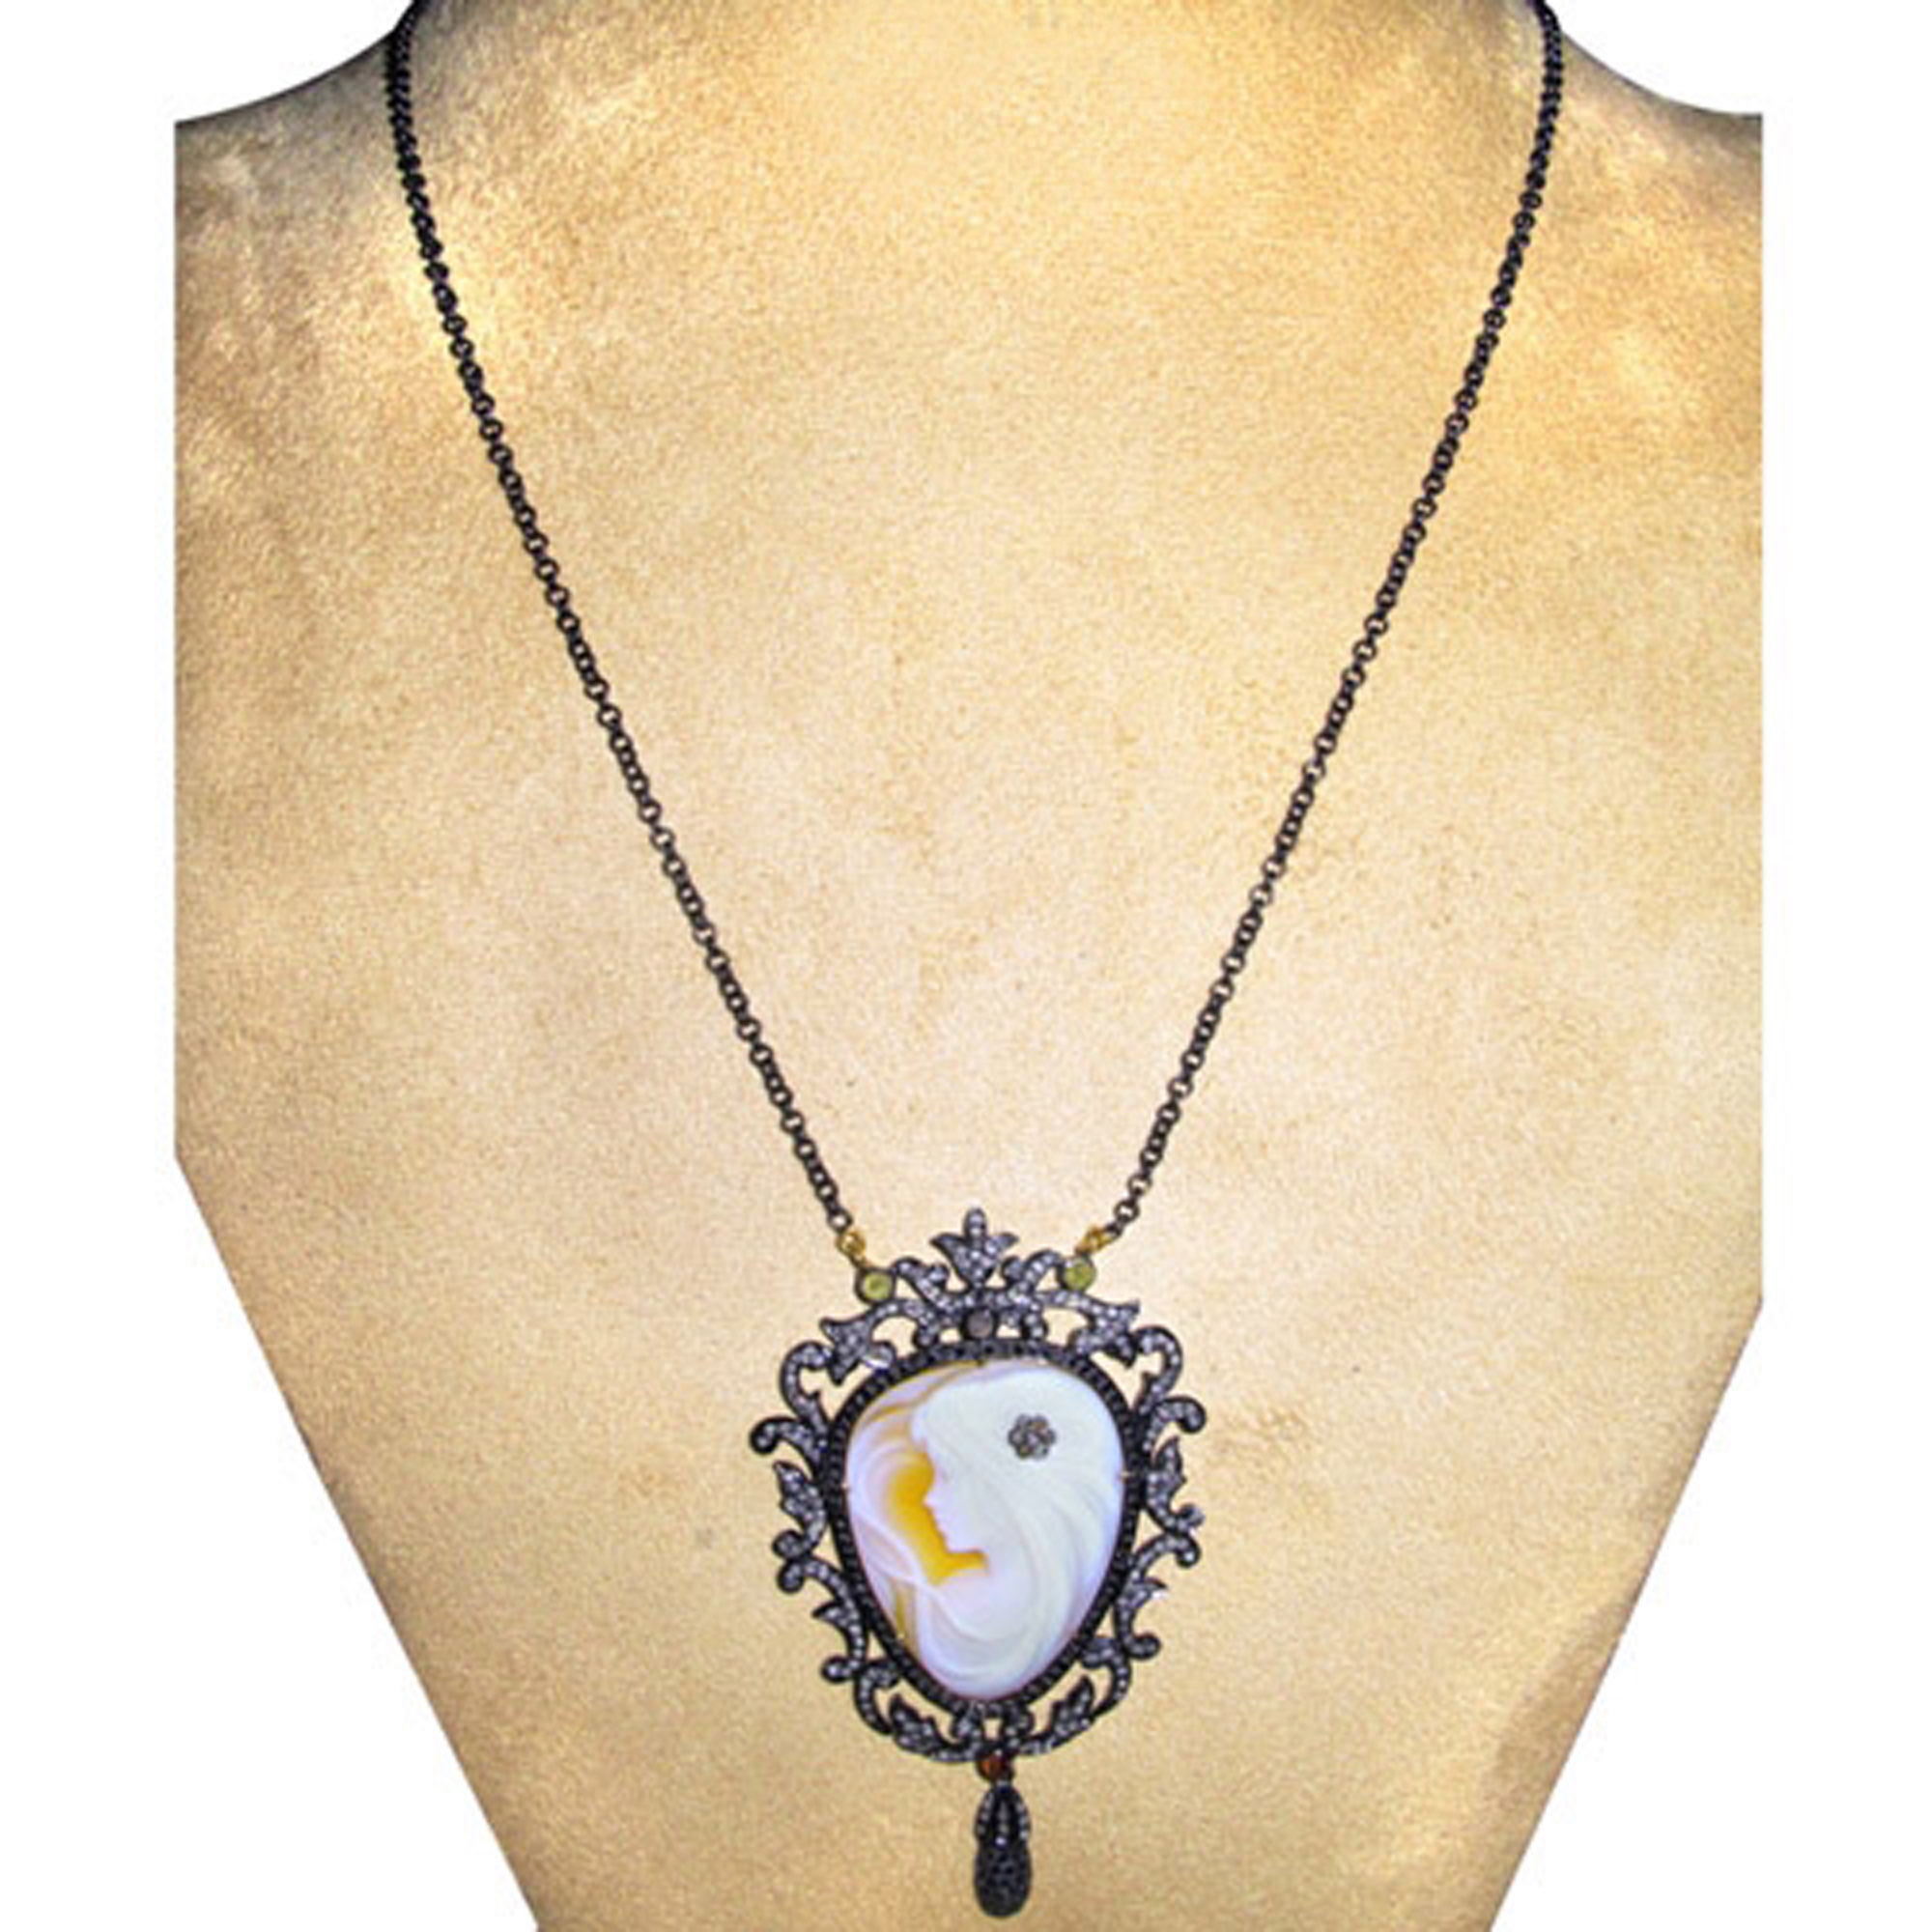 Gold & Silver cameo carving diamond vintage chain necklace